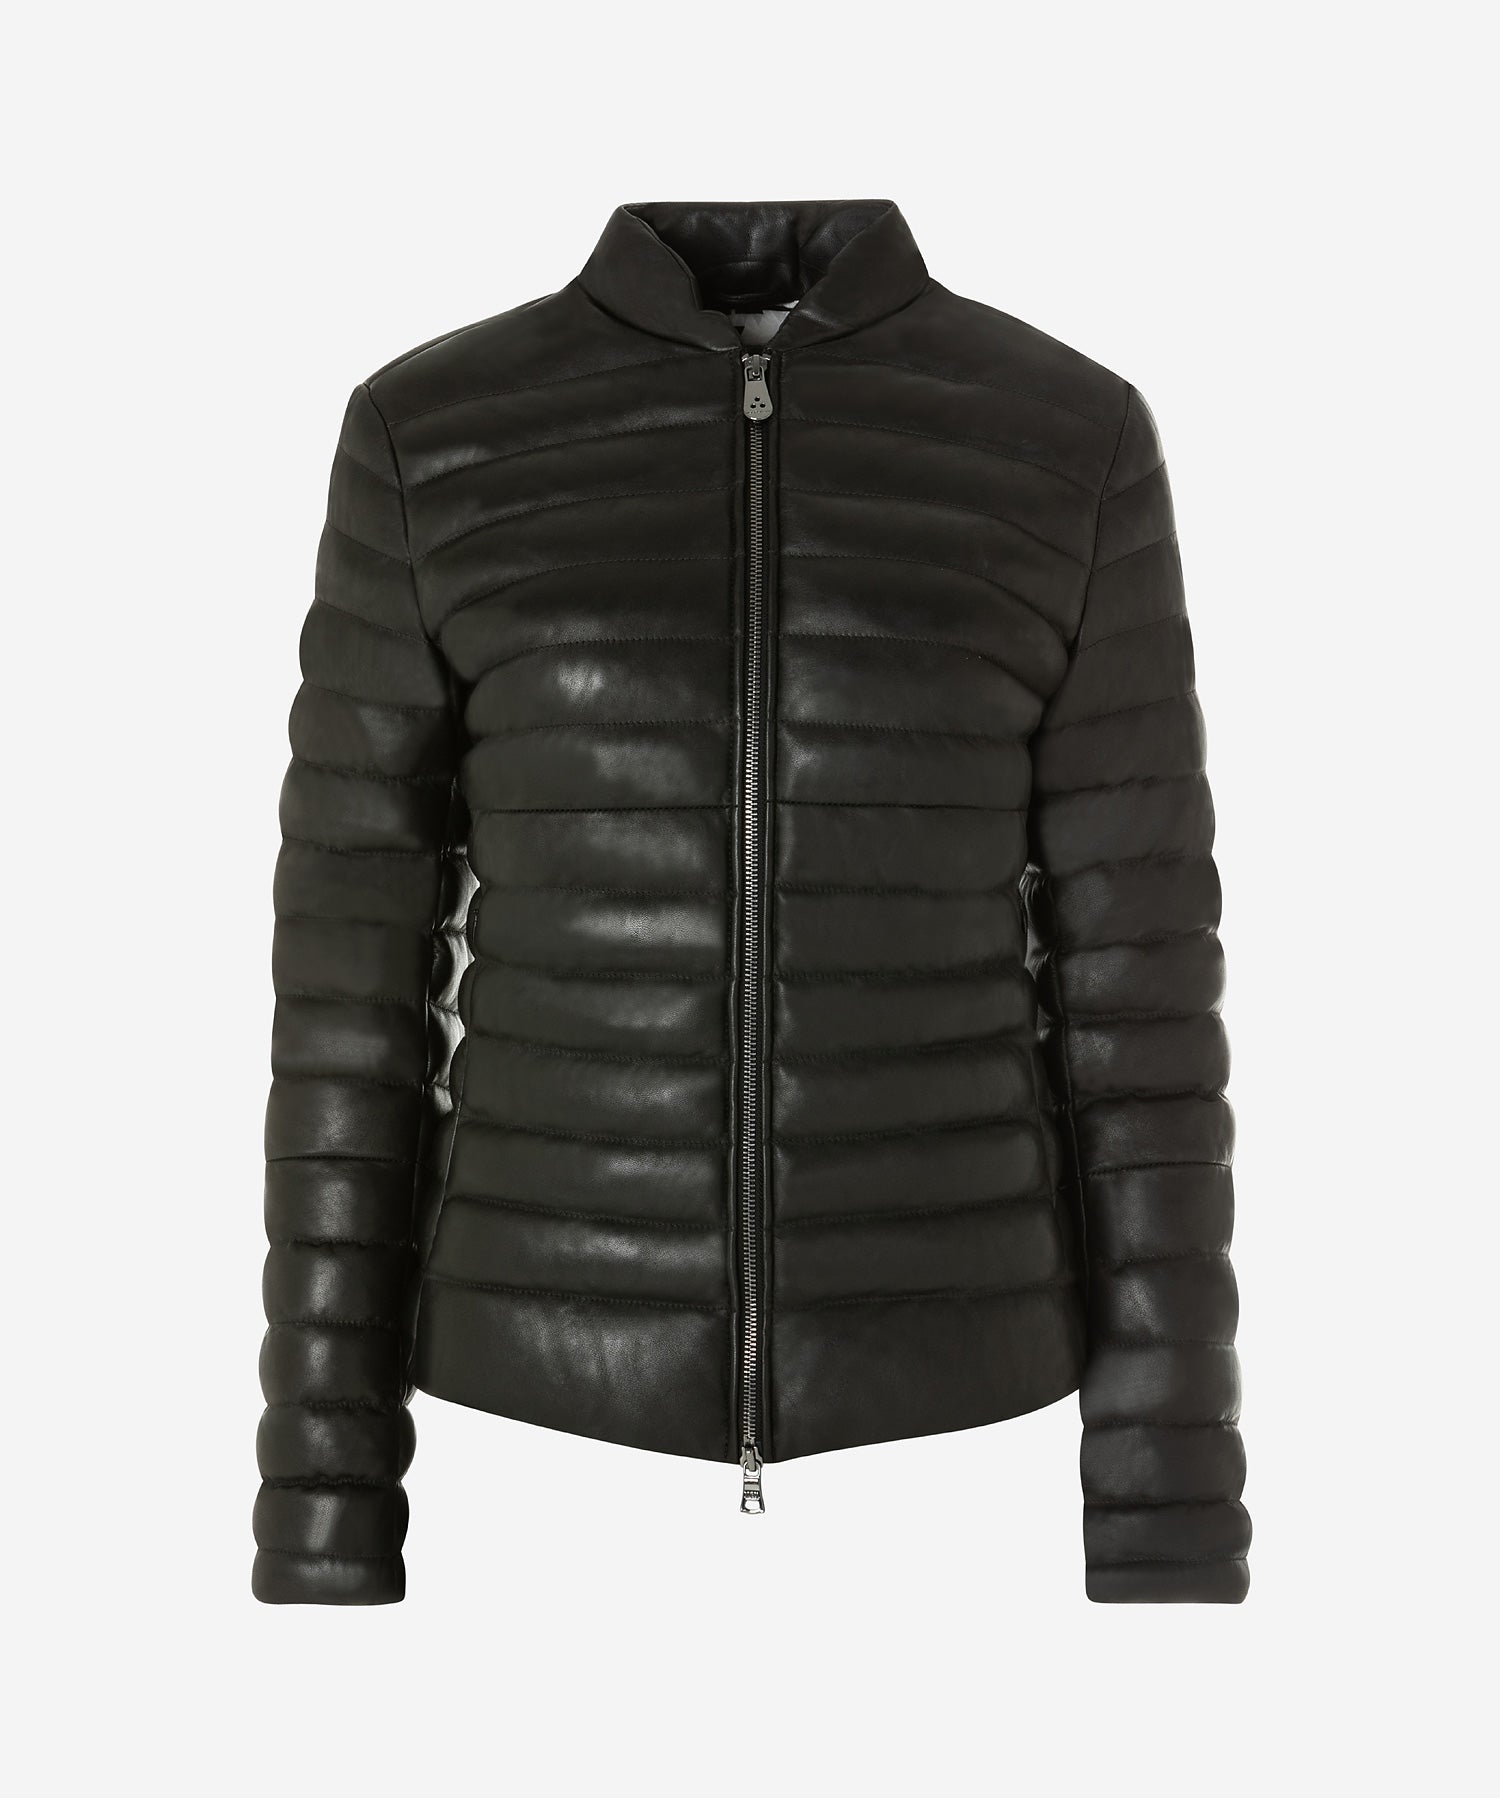 Peuterey Opuntia Womens Leather Down Jacket  3ebe7ada22a